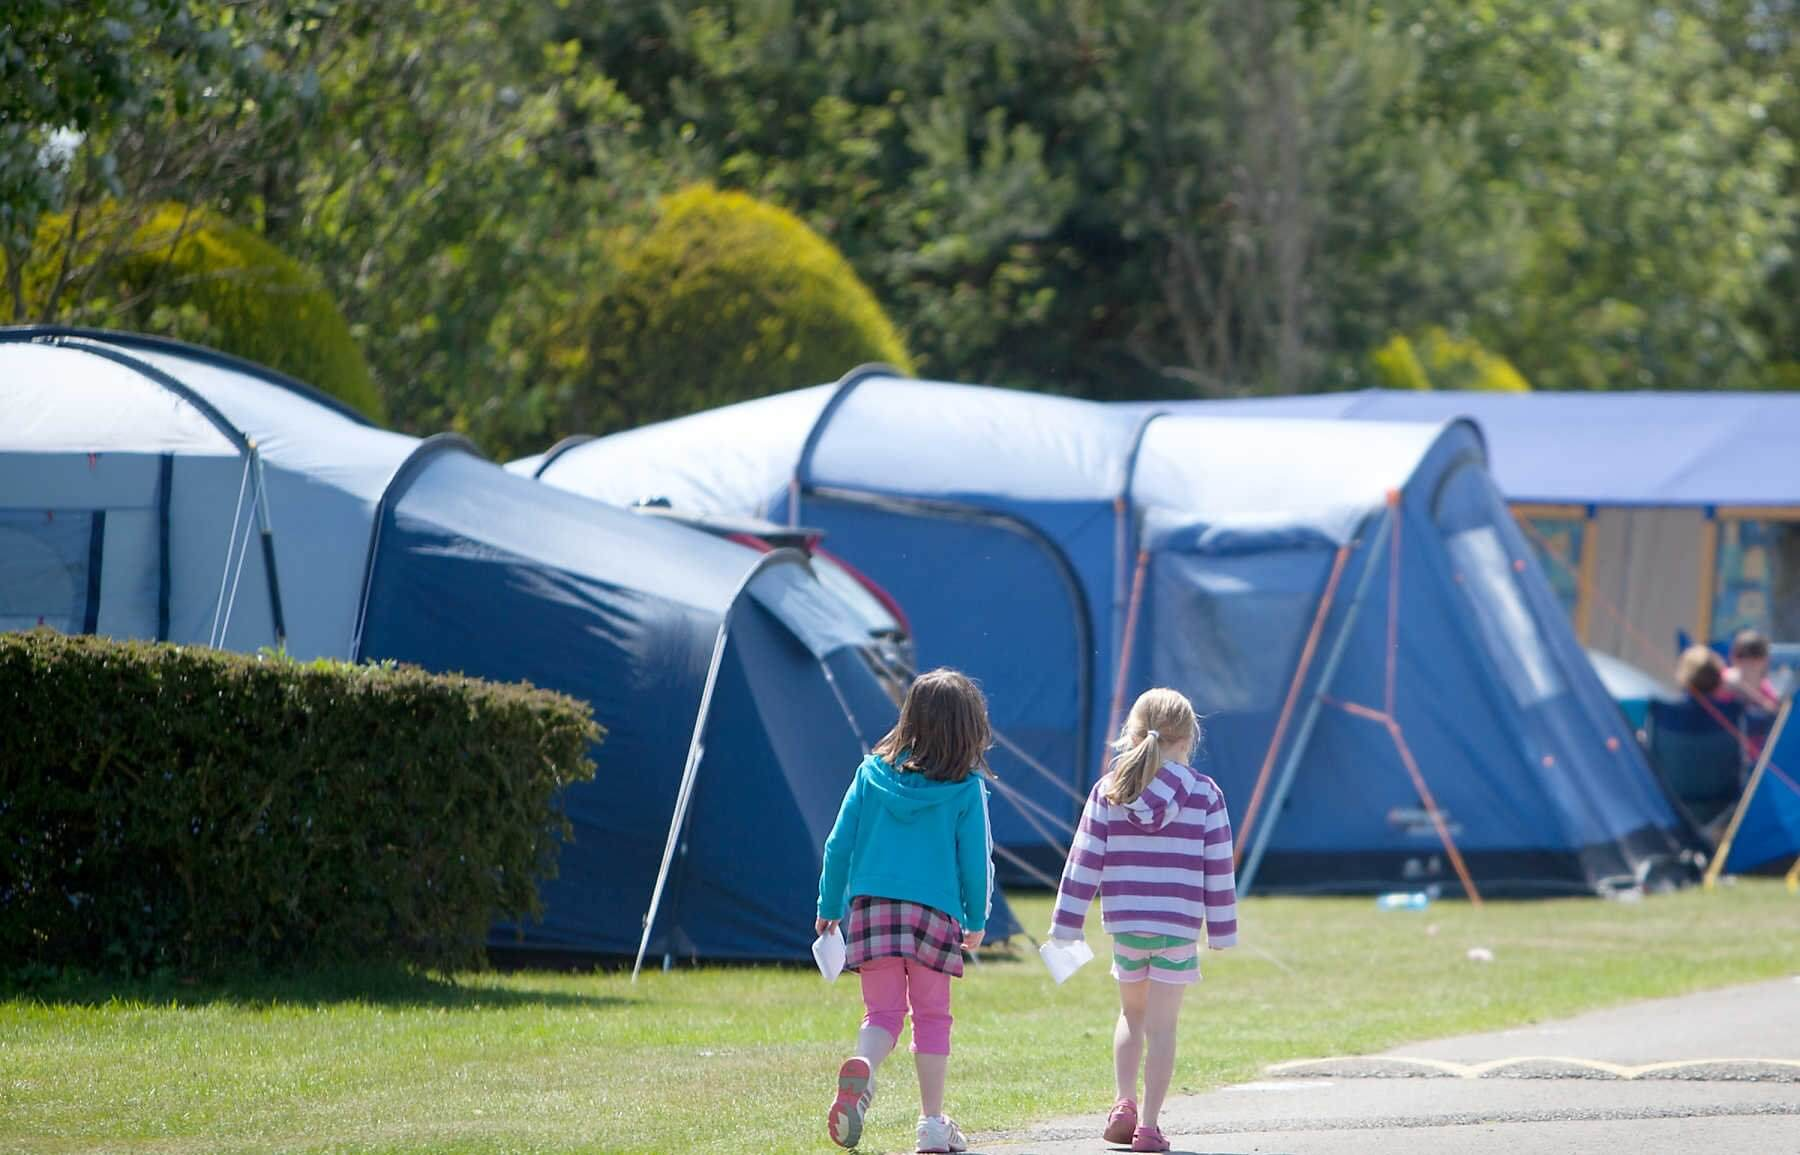 Merley Court Holiday Park (shorefield Holidays)